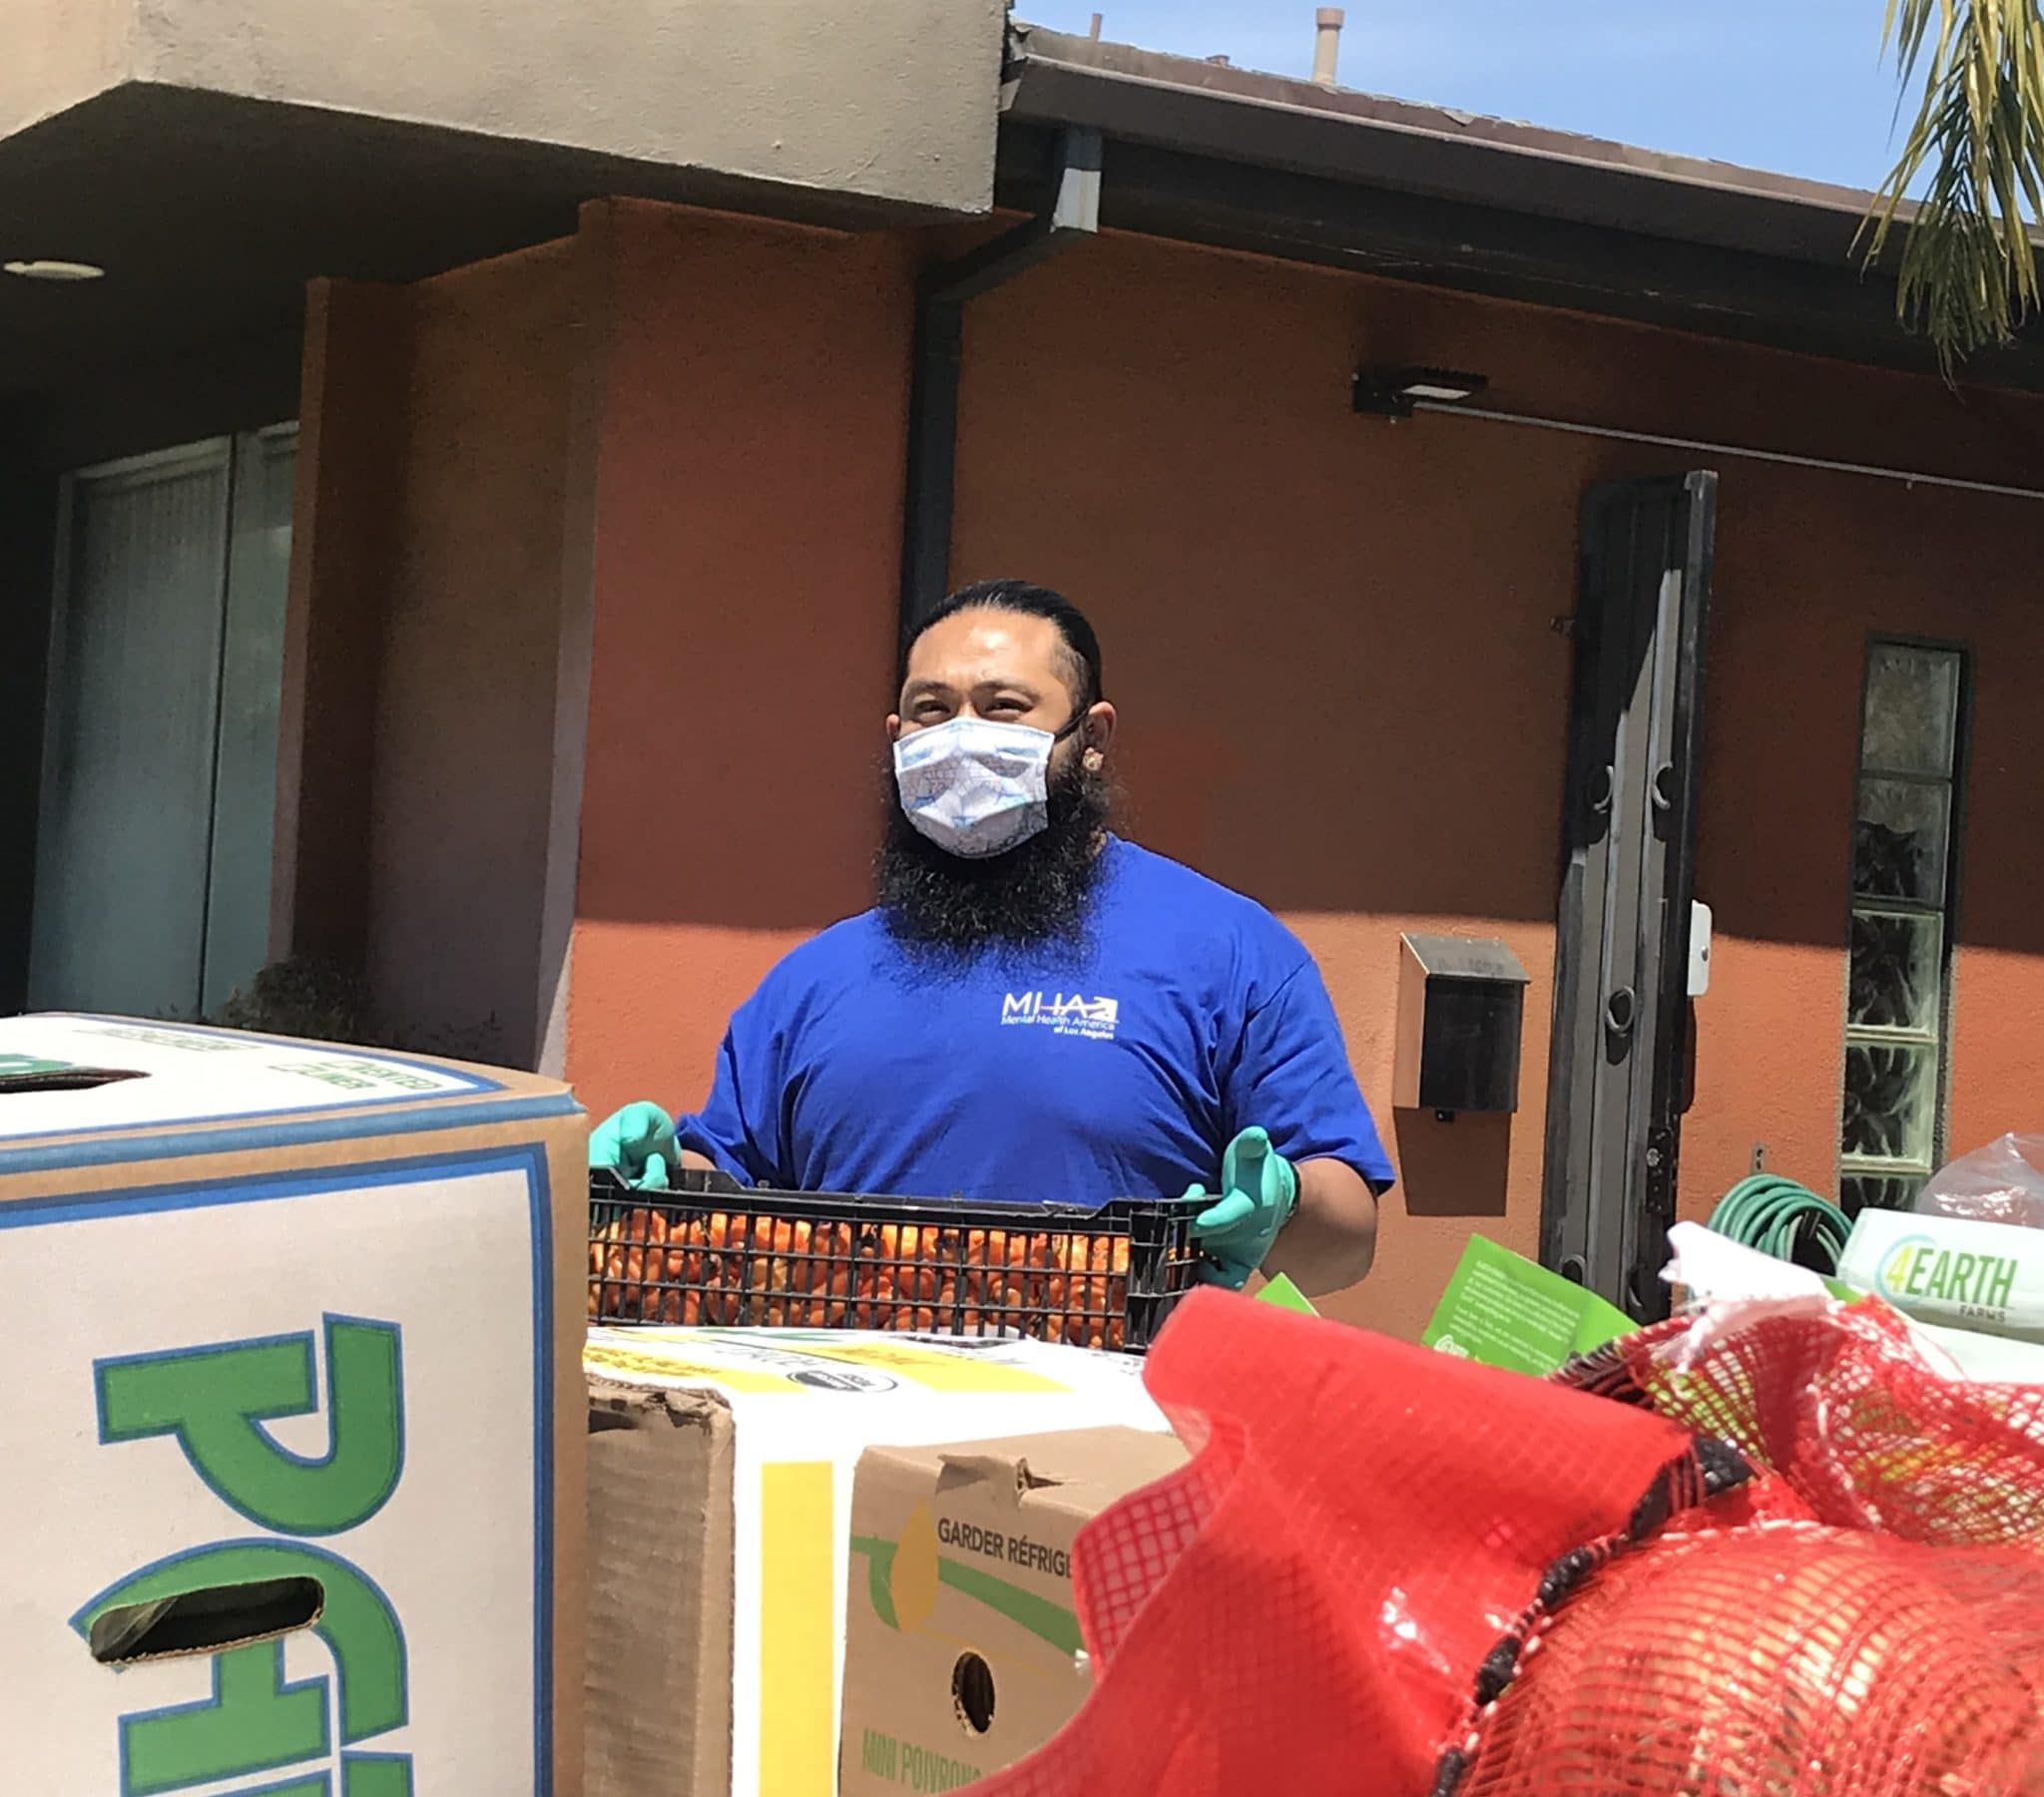 Man wearing mask carrying crate of produce